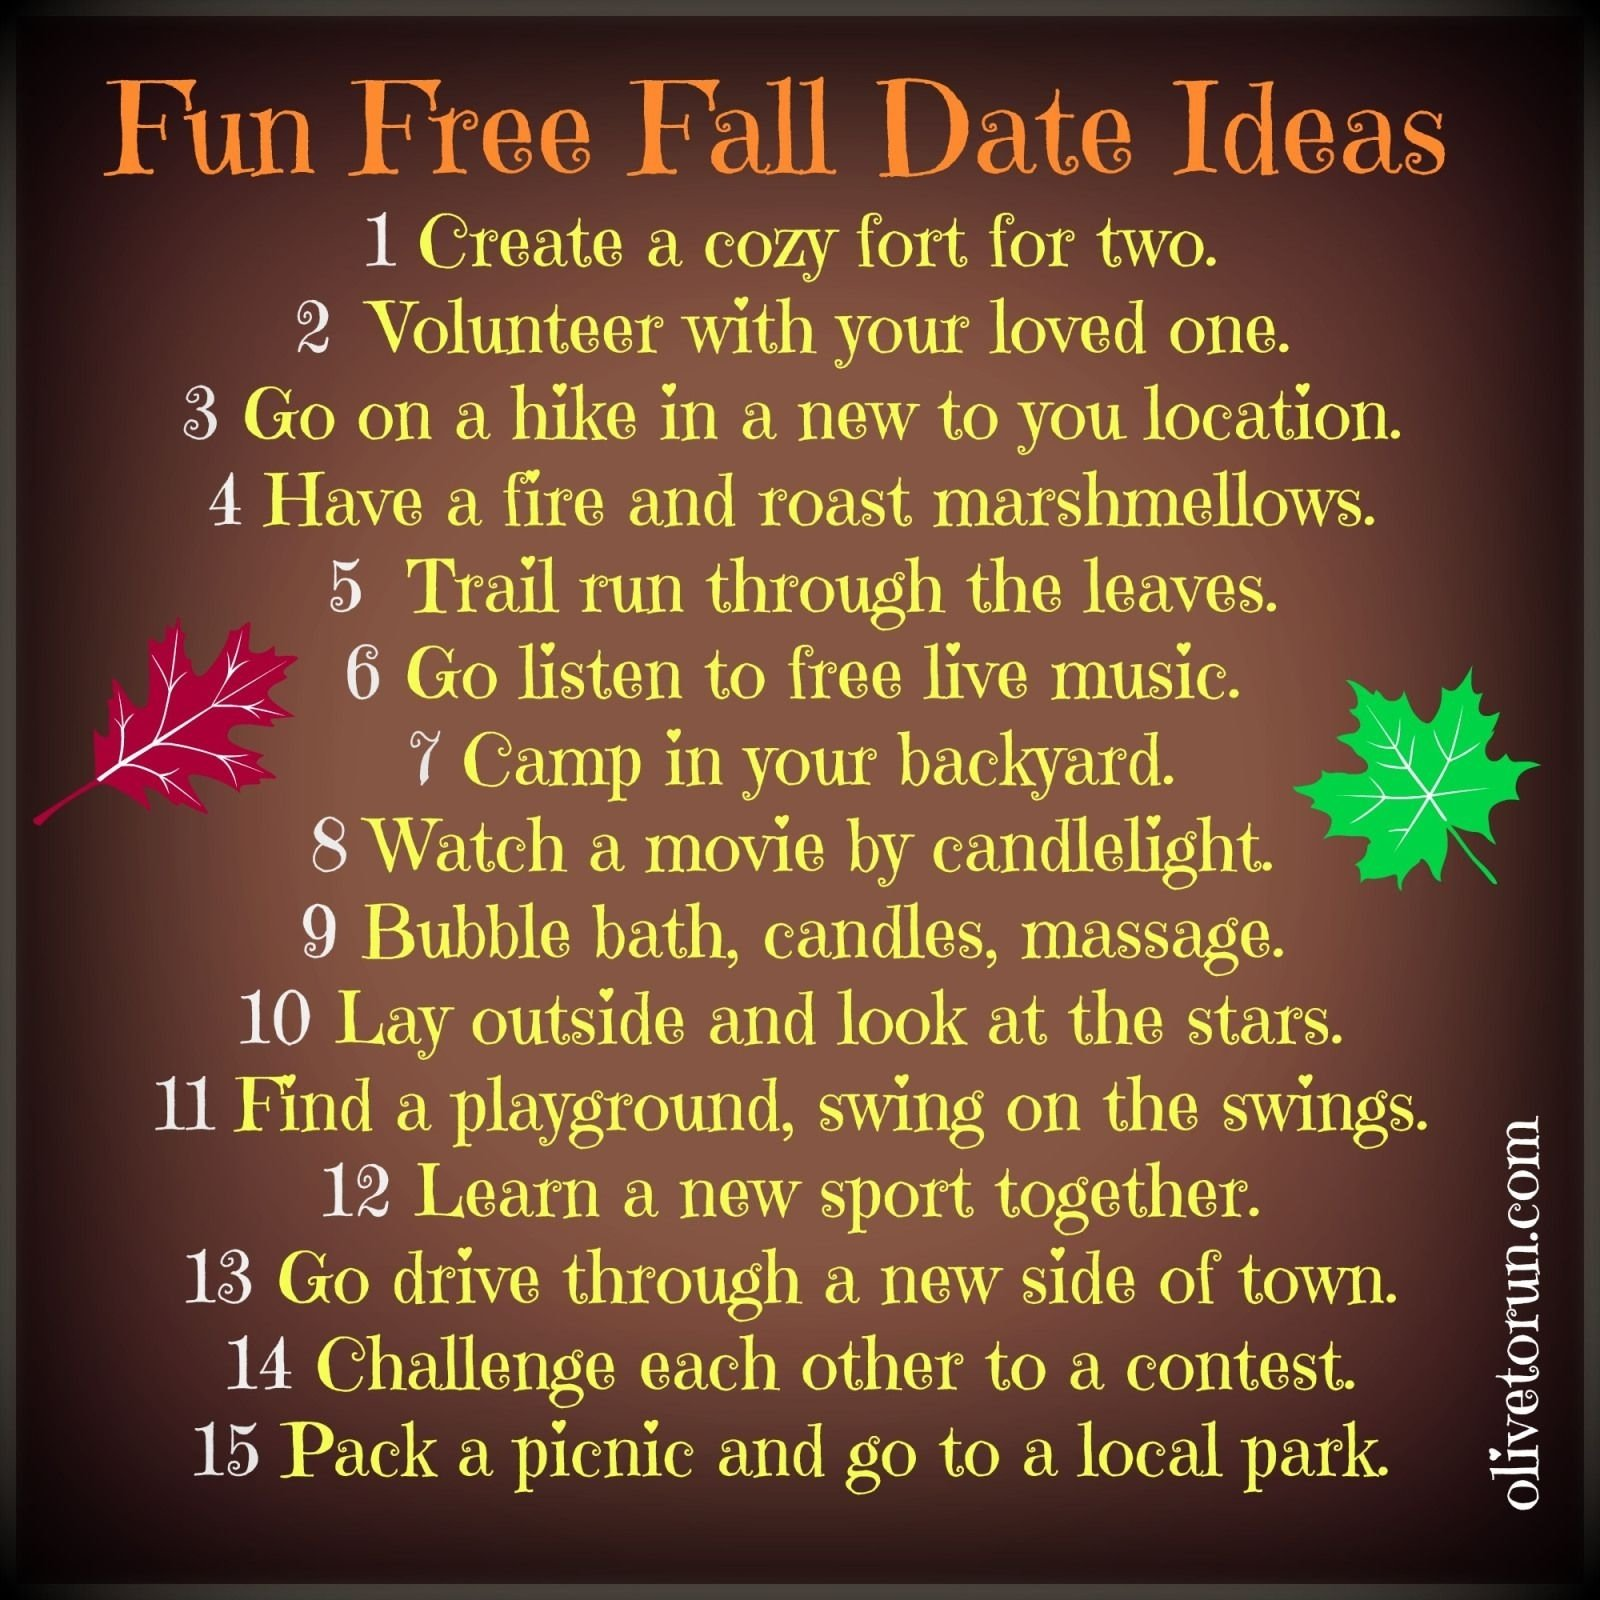 10 Lovable Date Ideas For Married Couples dating ideas for married couples 1 go geocaching 2 2021